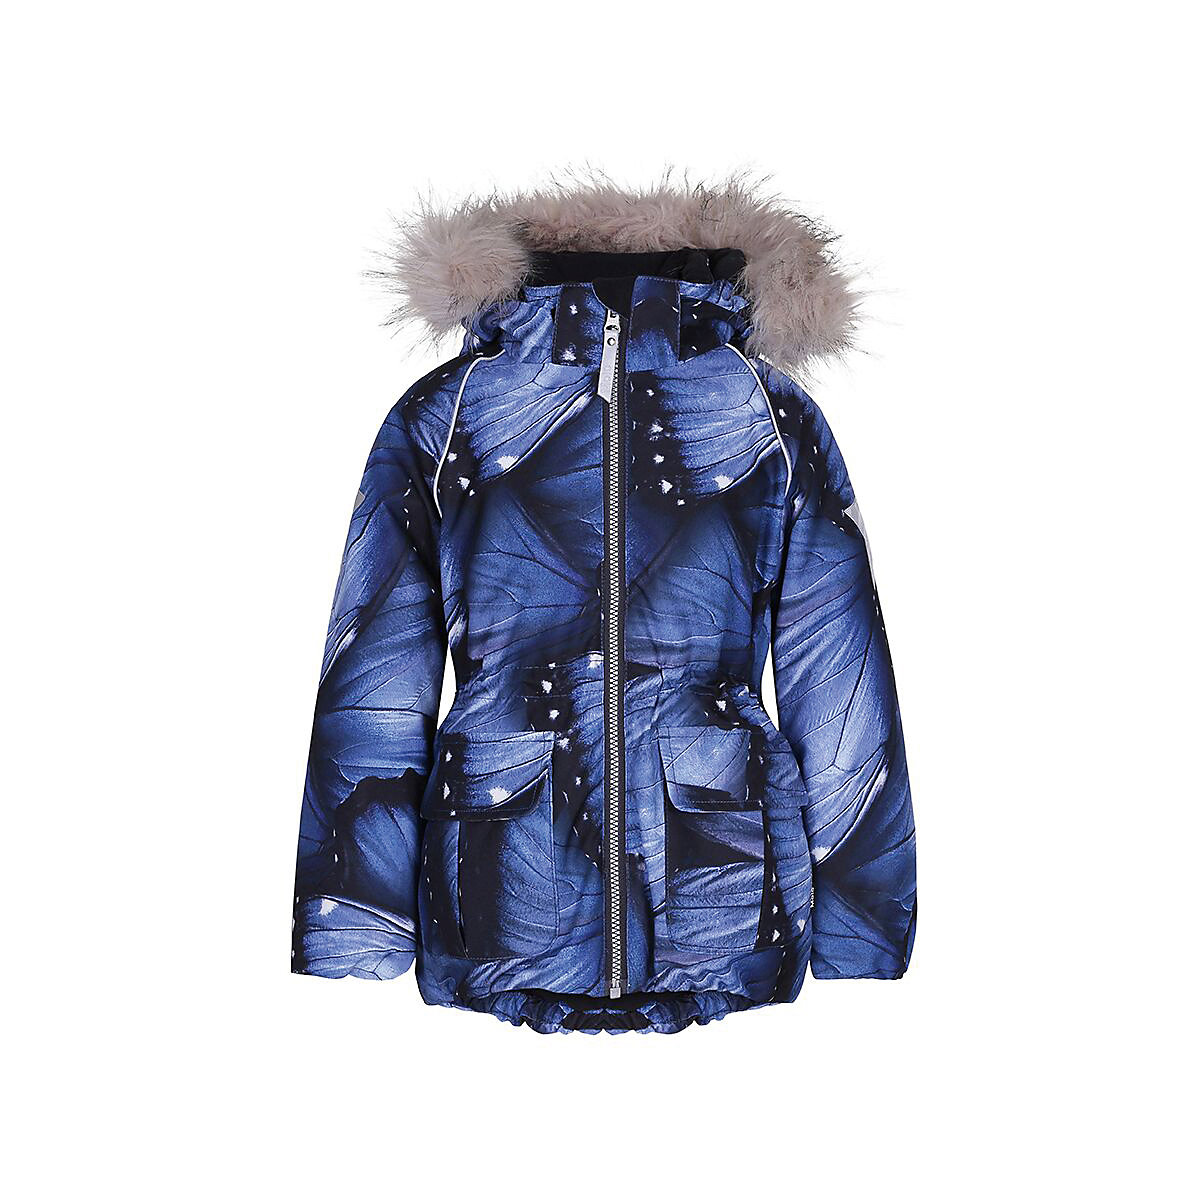 Jackets & Coats MOLO for girls 9170667 Jacket Coat Denim Cardigan Warm Children clothes Kids winter jacket men casual male coat warm men zipper outwear duck down jacket middle long mens parka with fur hood thick jackets